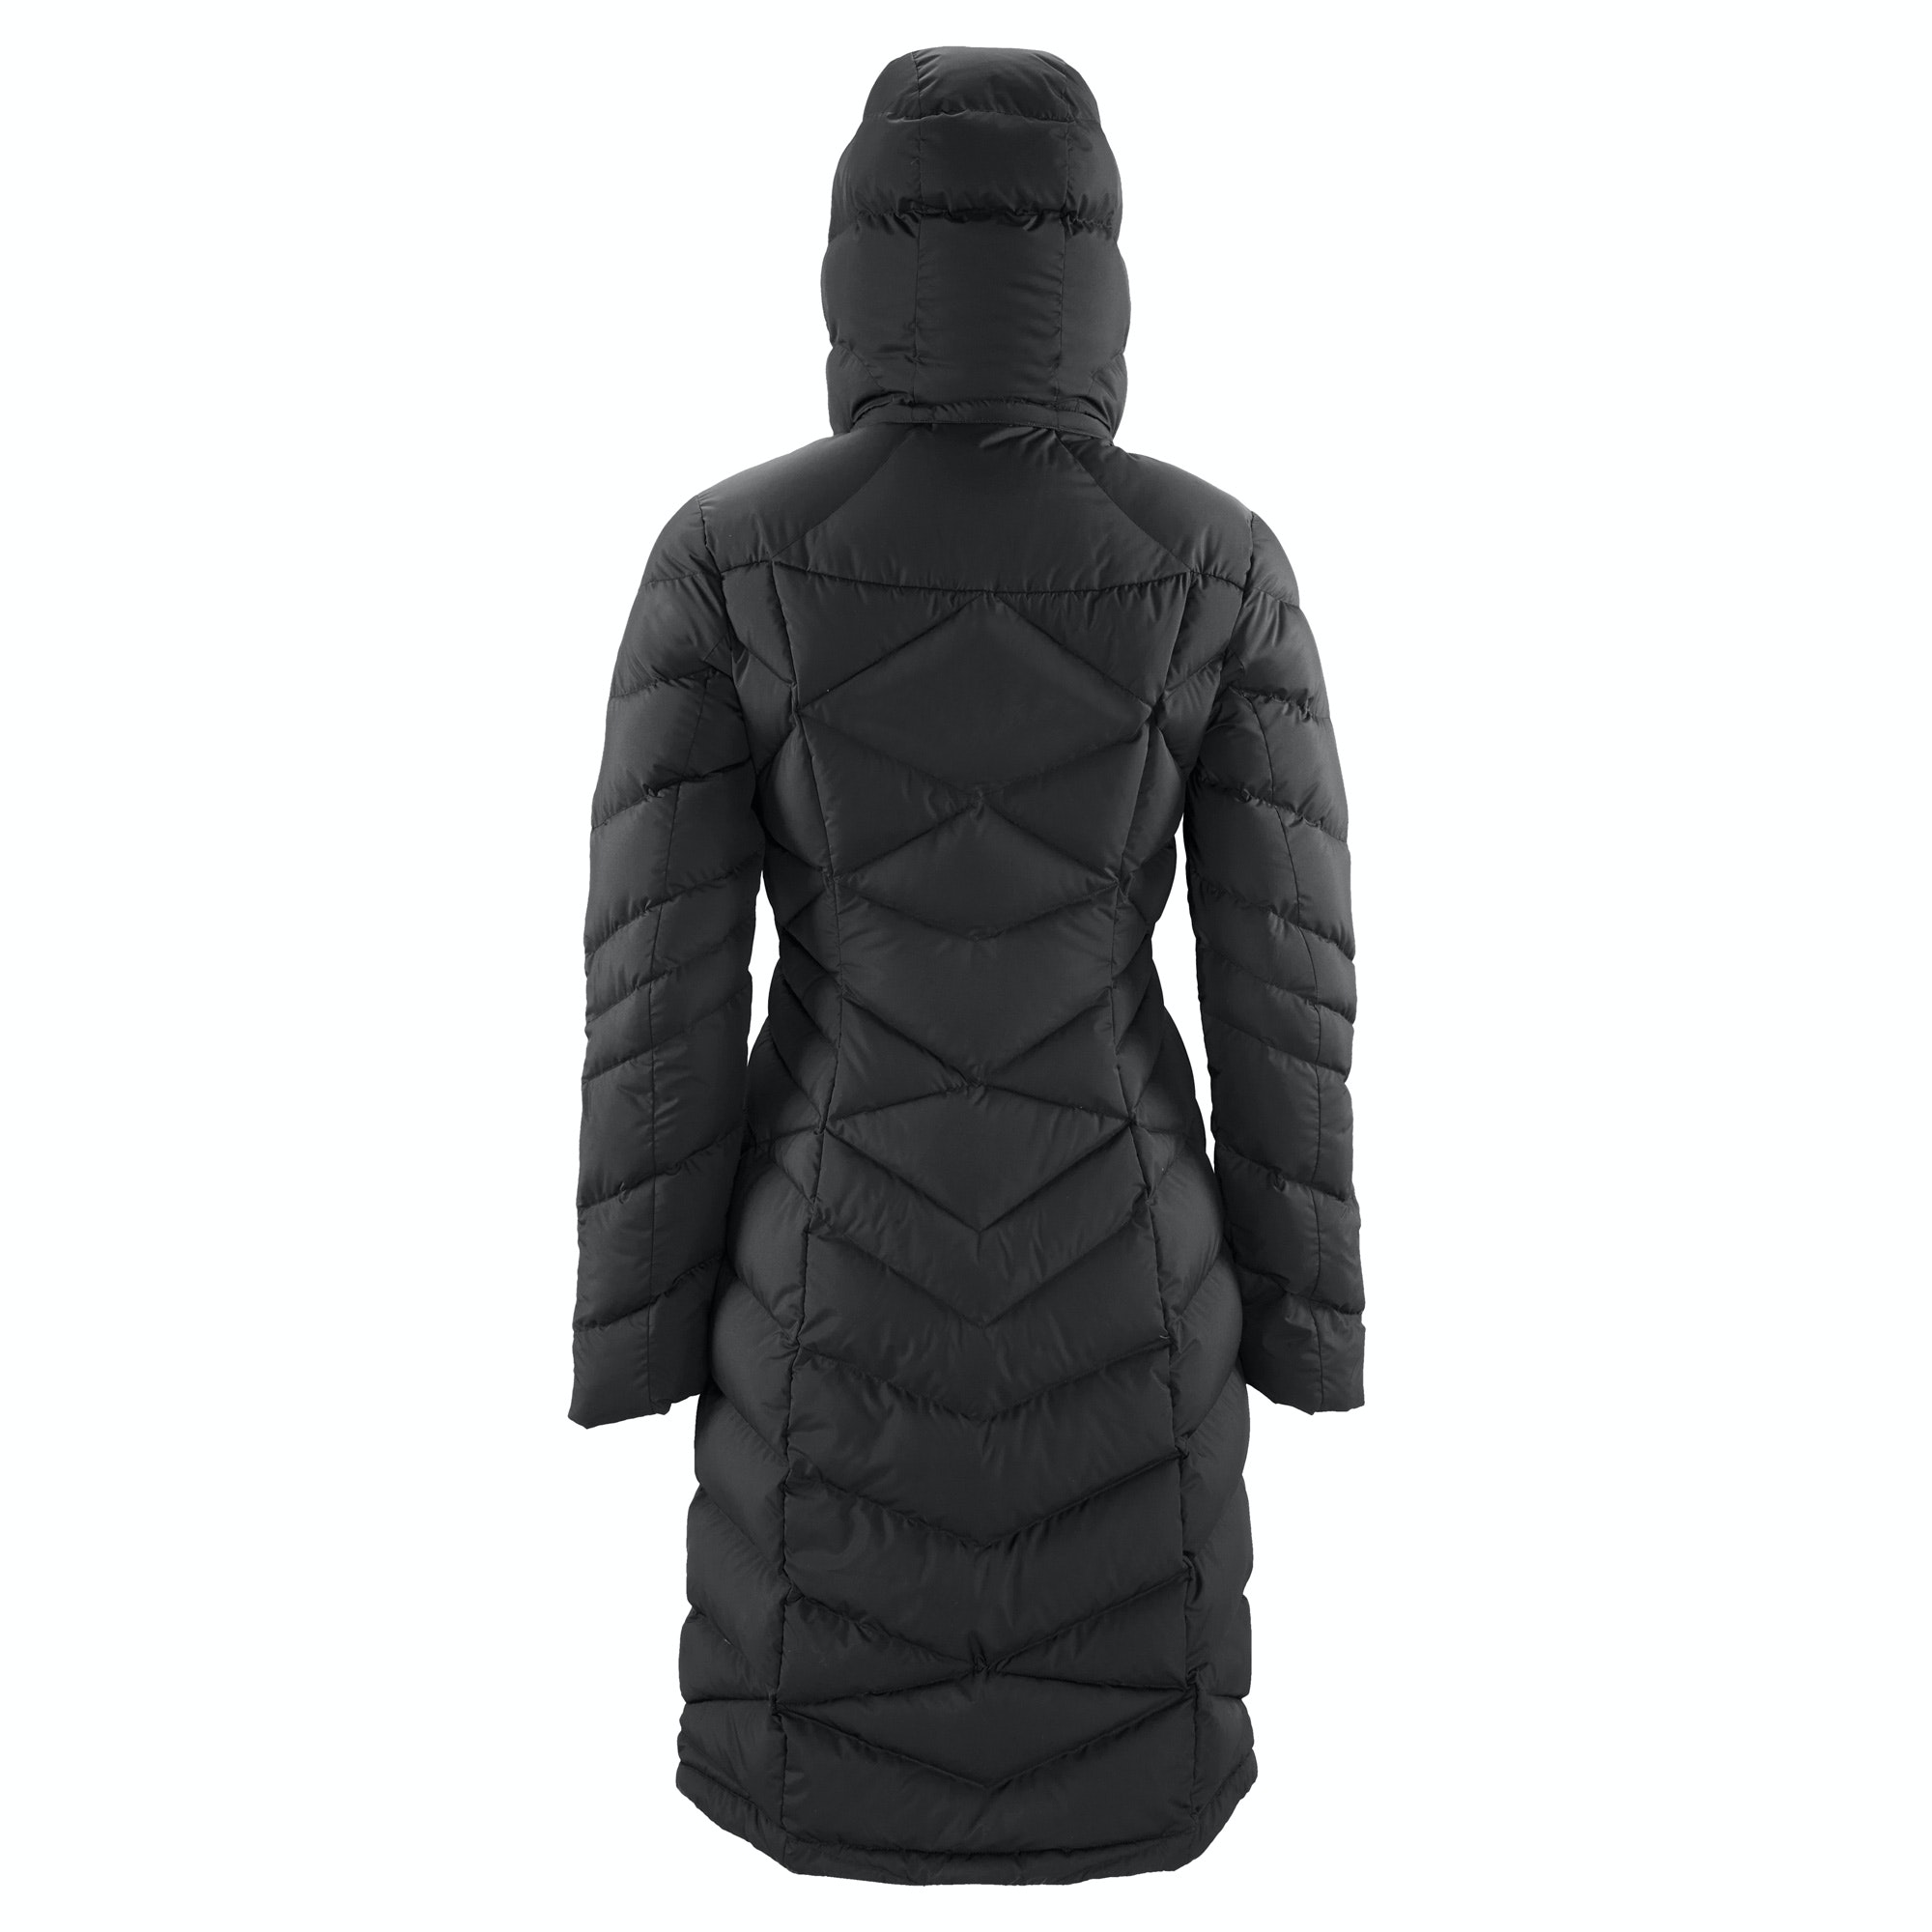 parka coat jackets quilted luxe faux quilt s collar fur women coats oversized with grey